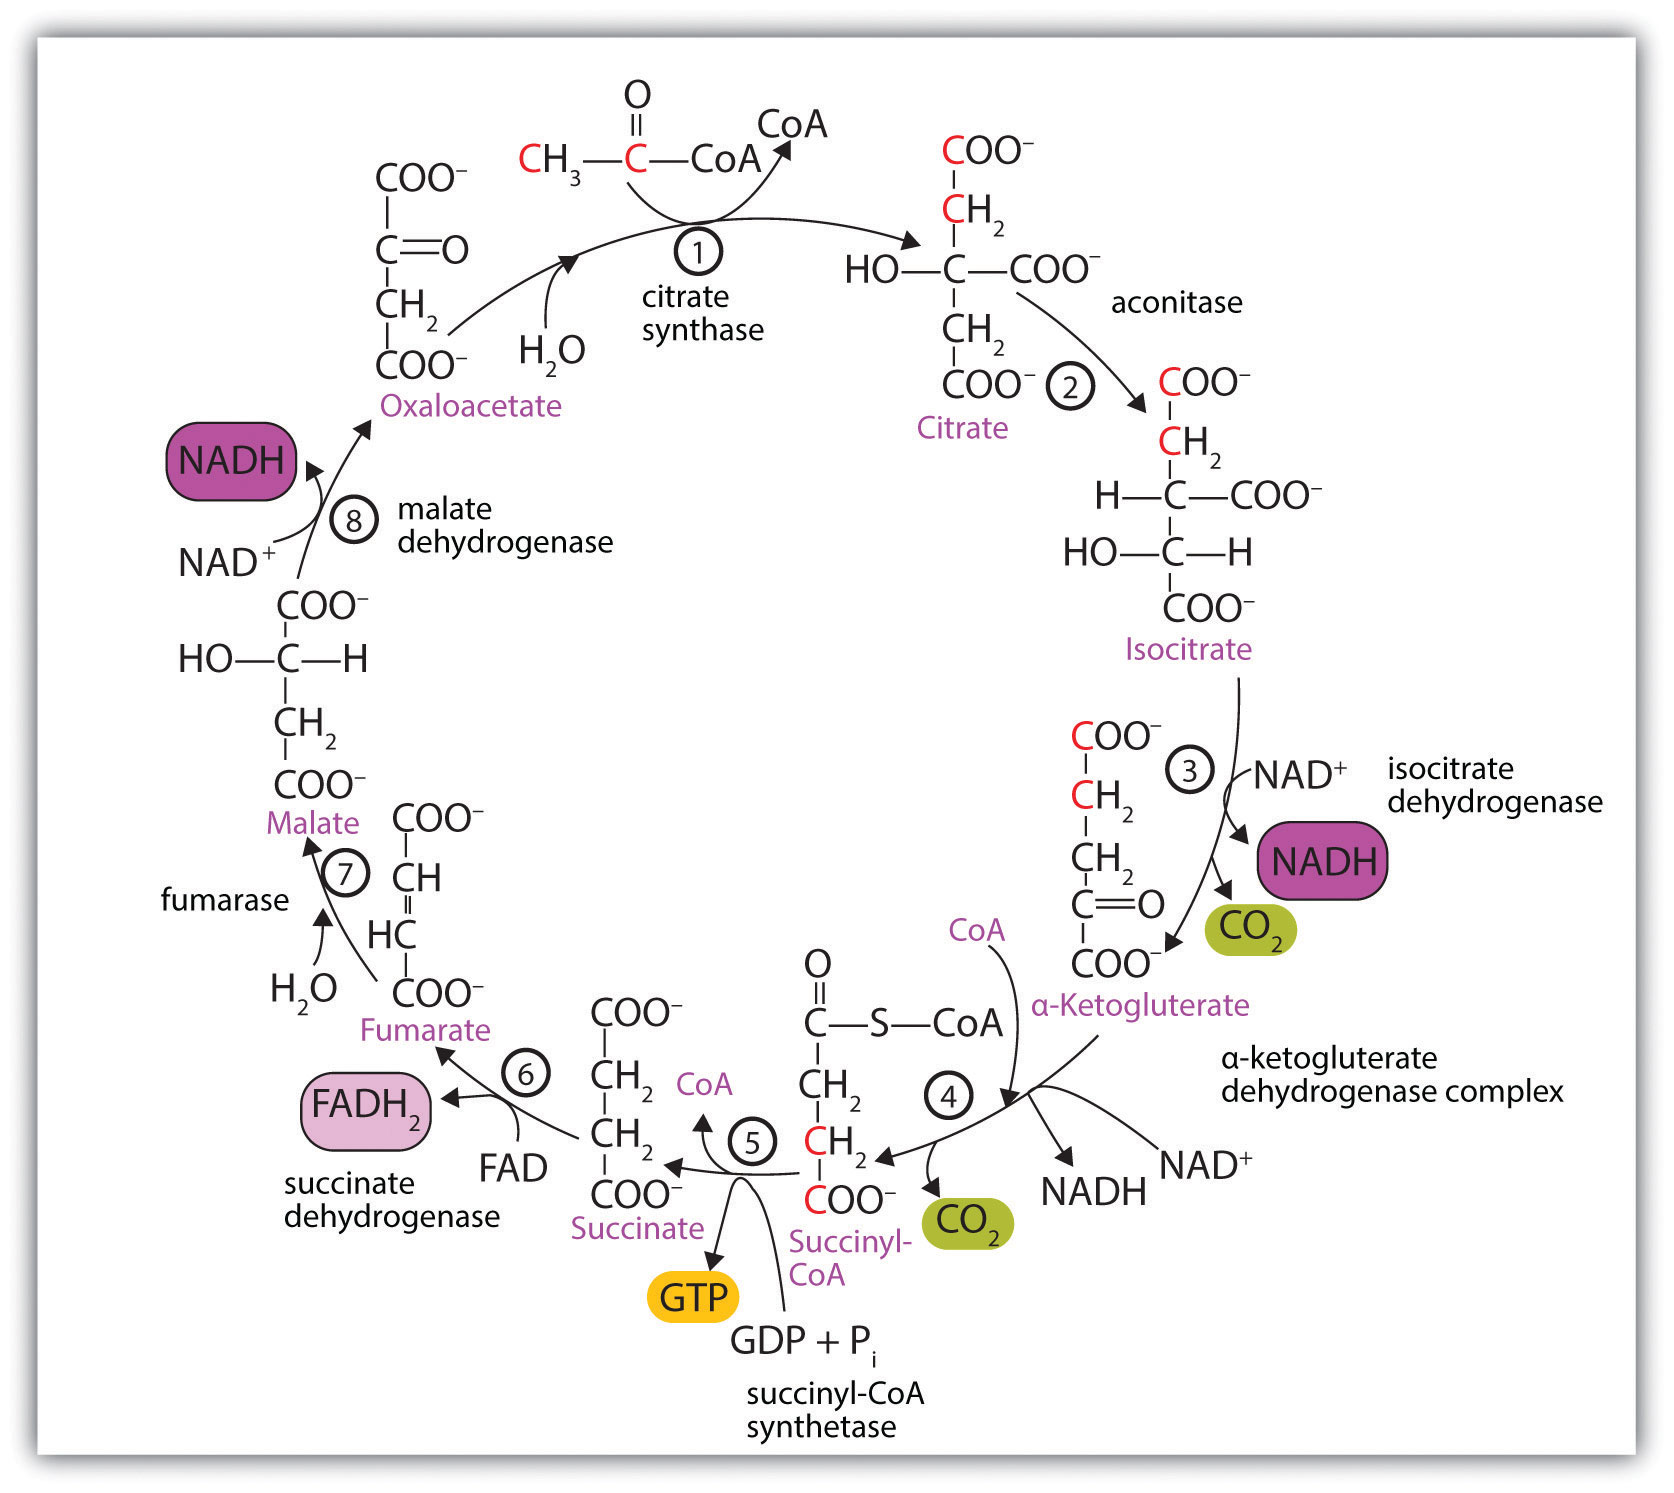 Citric Acid Cycle Steps Simplified of The Citric Acid Cycle